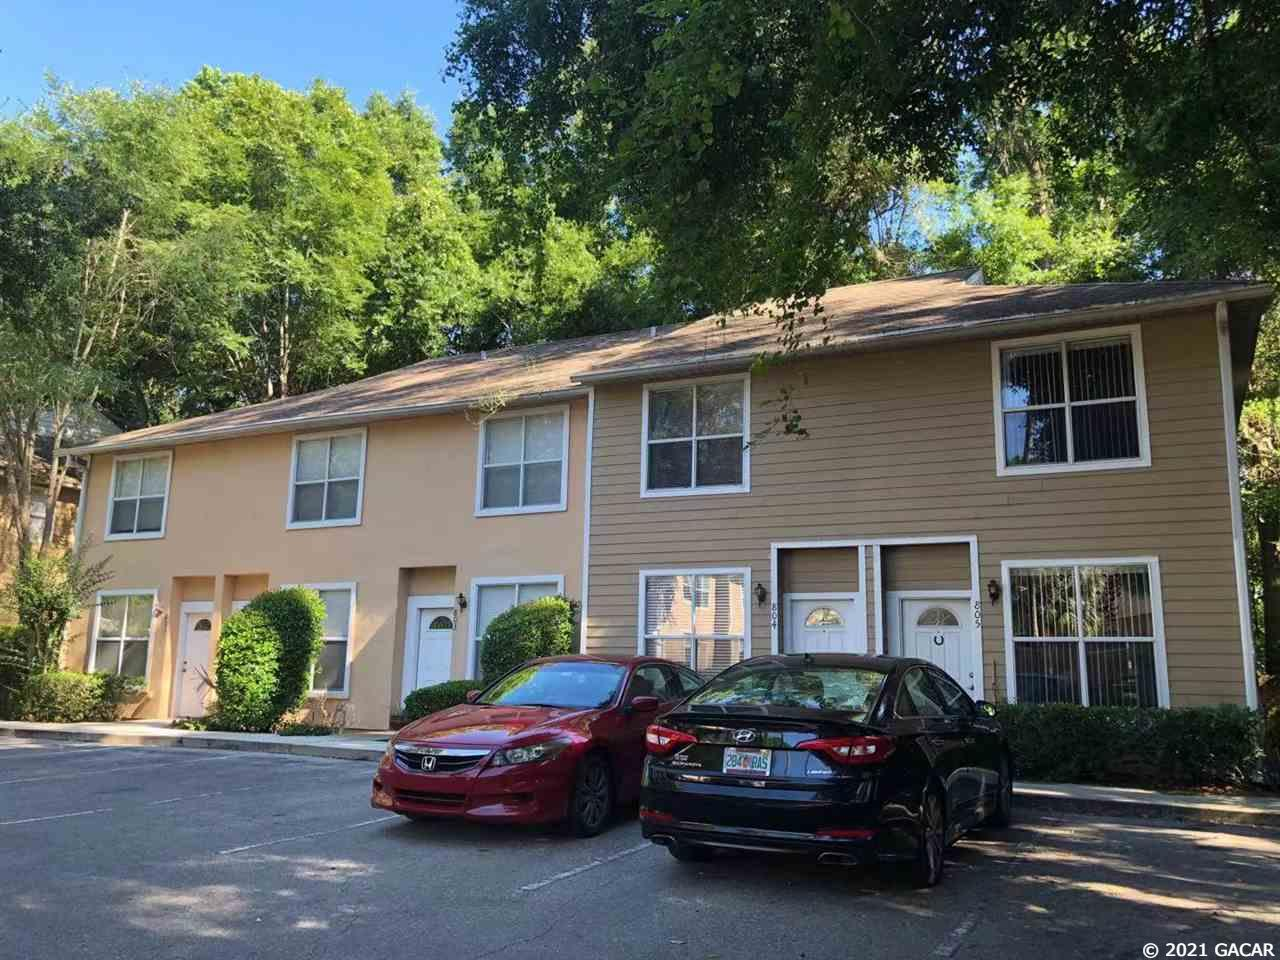 4415 SW 34th Street 805, Gainesville, Florida 32608, 2 Bedrooms Bedrooms, ,3 BathroomsBathrooms,Townhouse,For Sale,4415 SW 34th Street 805,444257